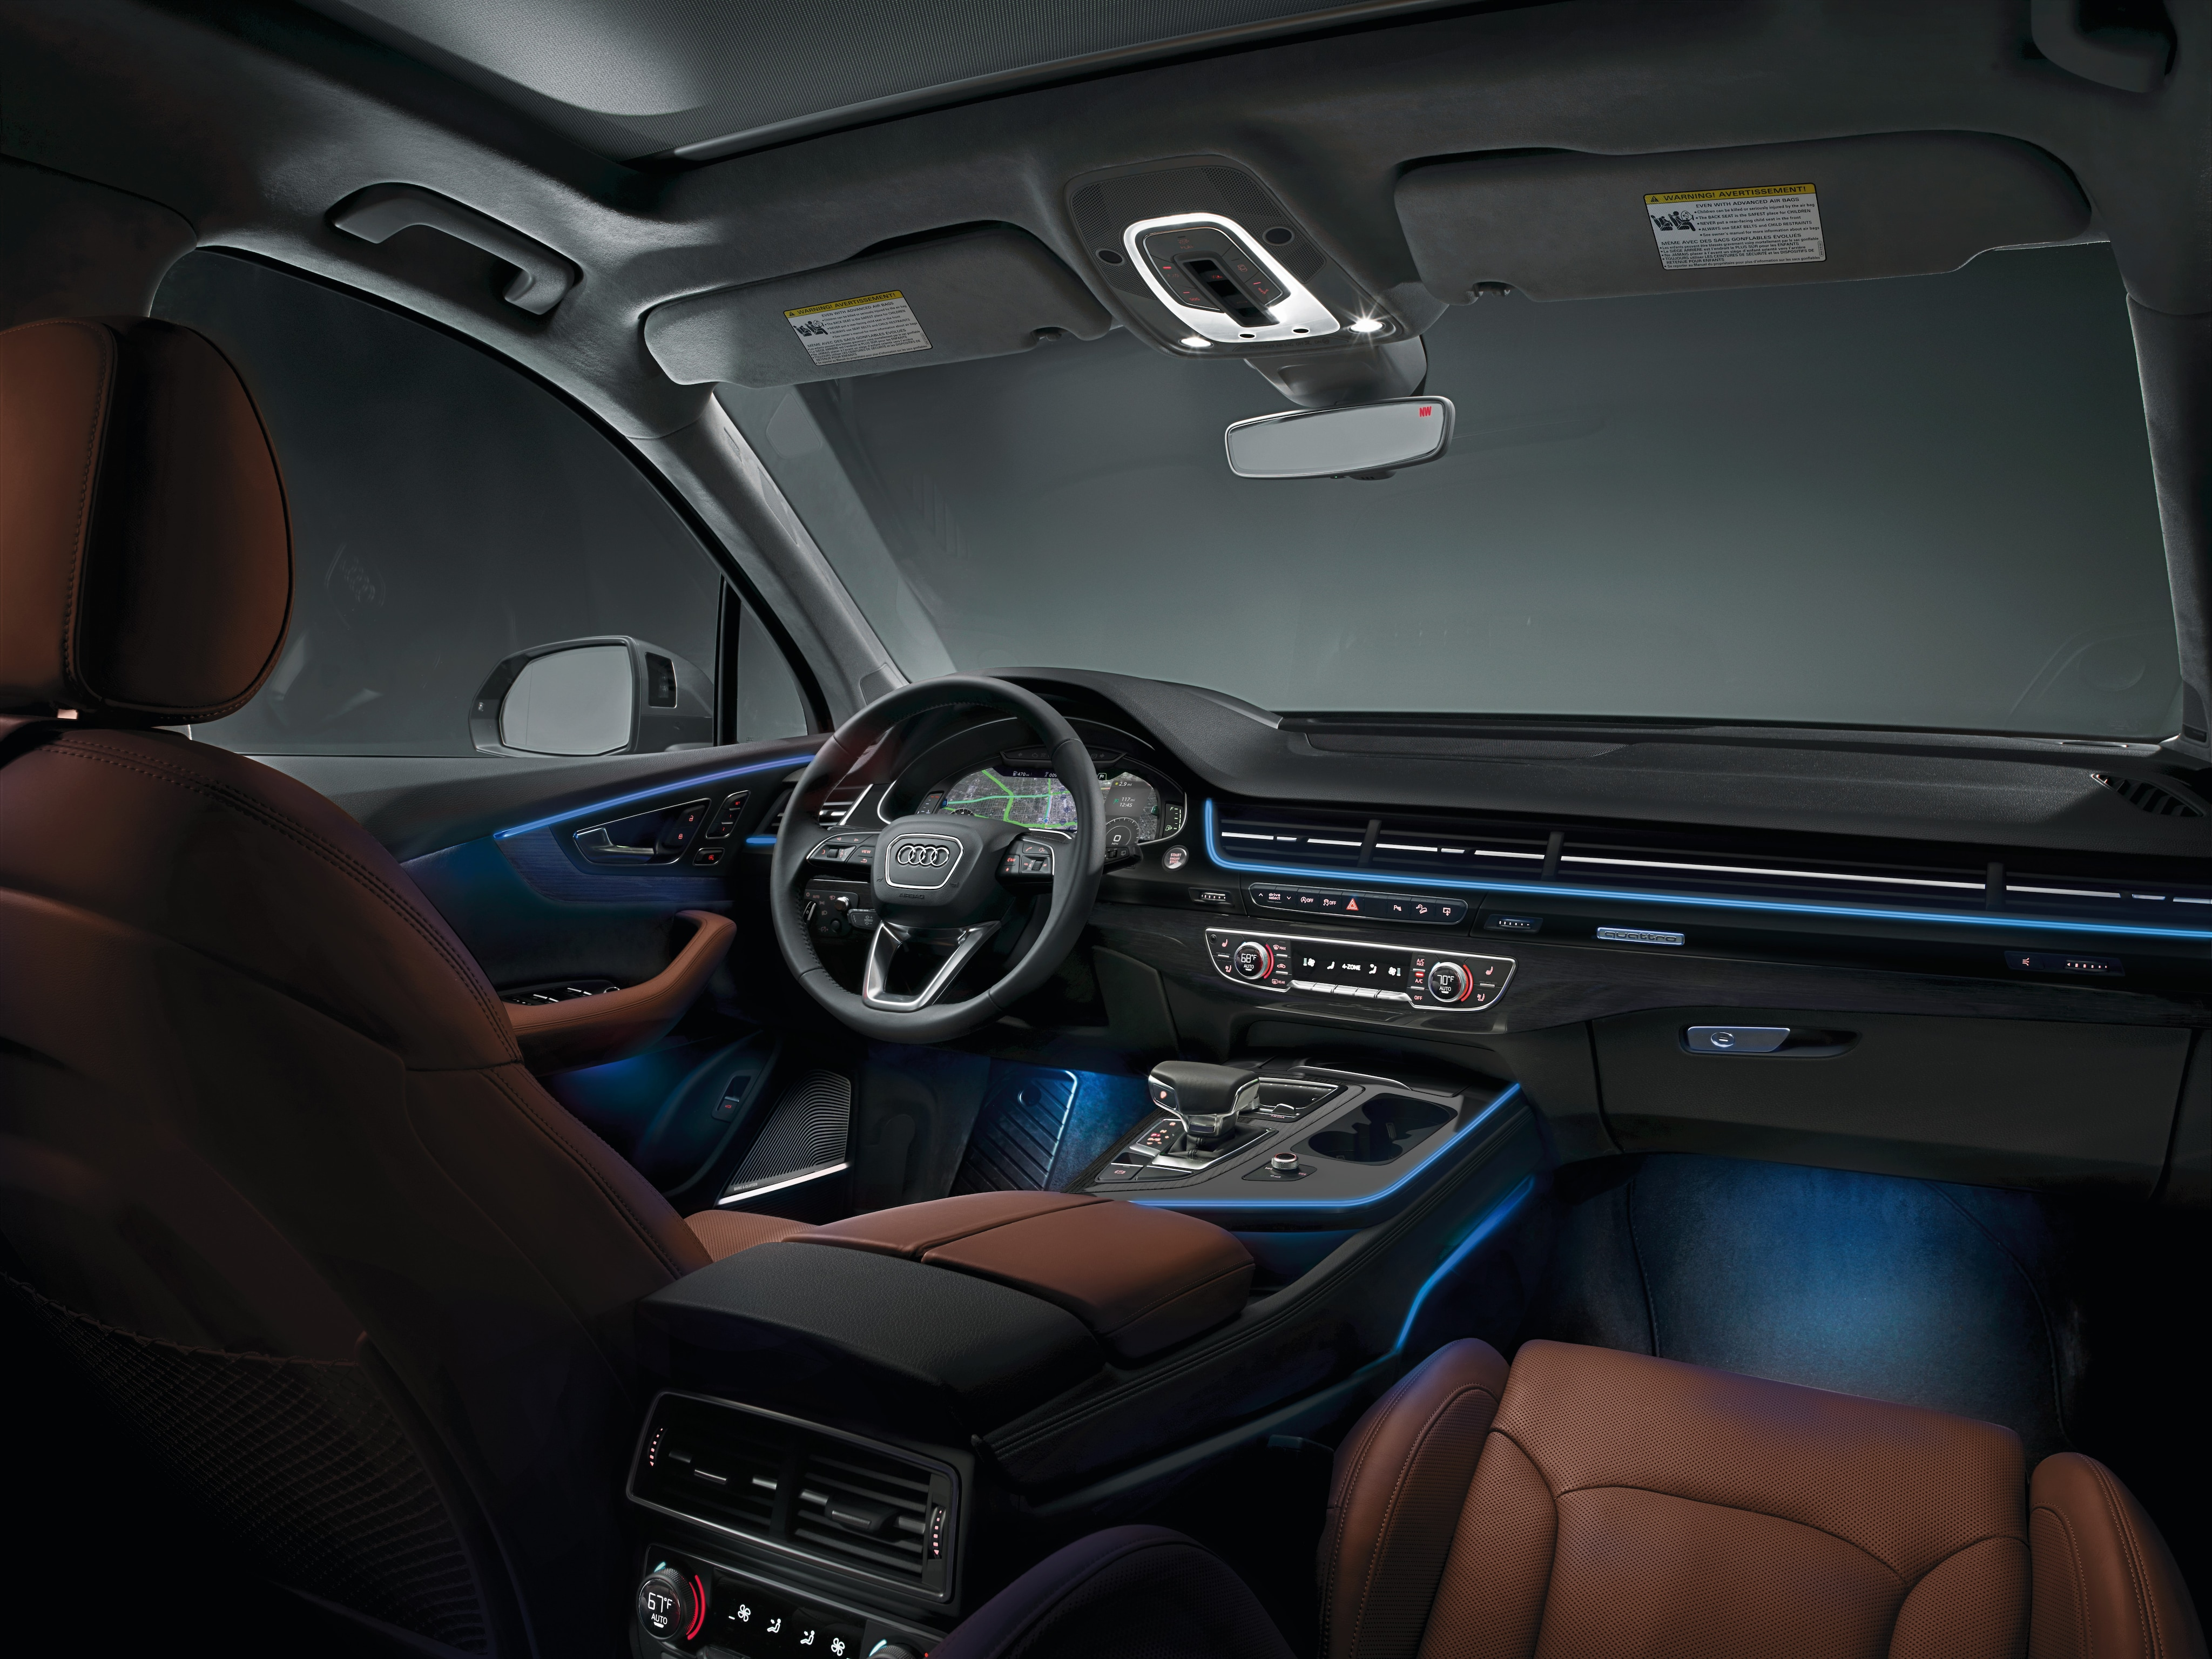 Audi Q7 Interior 2018 Awesome Home